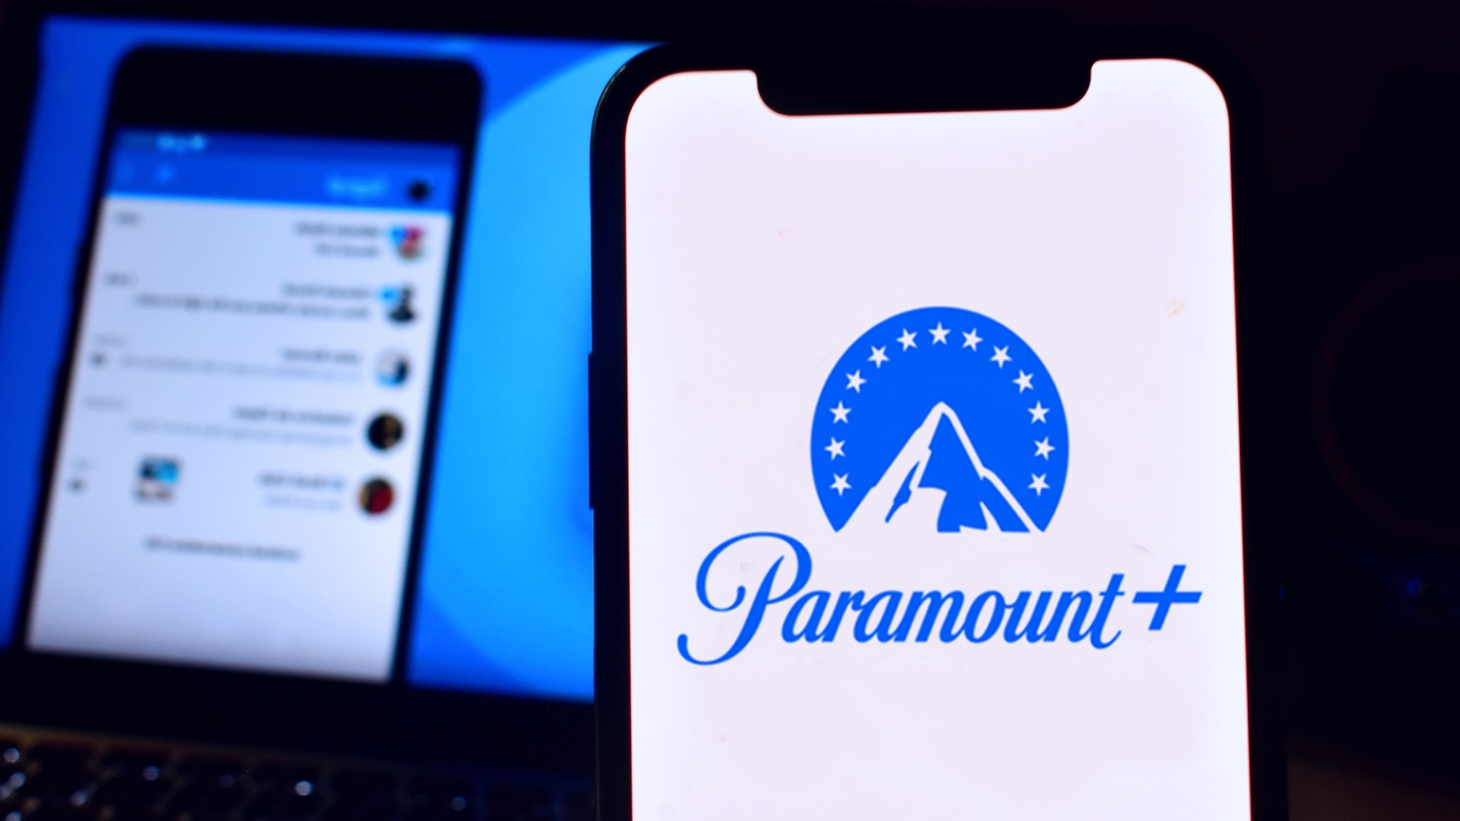 Jim Gianopulos worked to protect theatrical windows at Paramount. Now he's been fired in favor of someone who will oversee a strategy that pushes more movies directly to the streamer Paramount+.